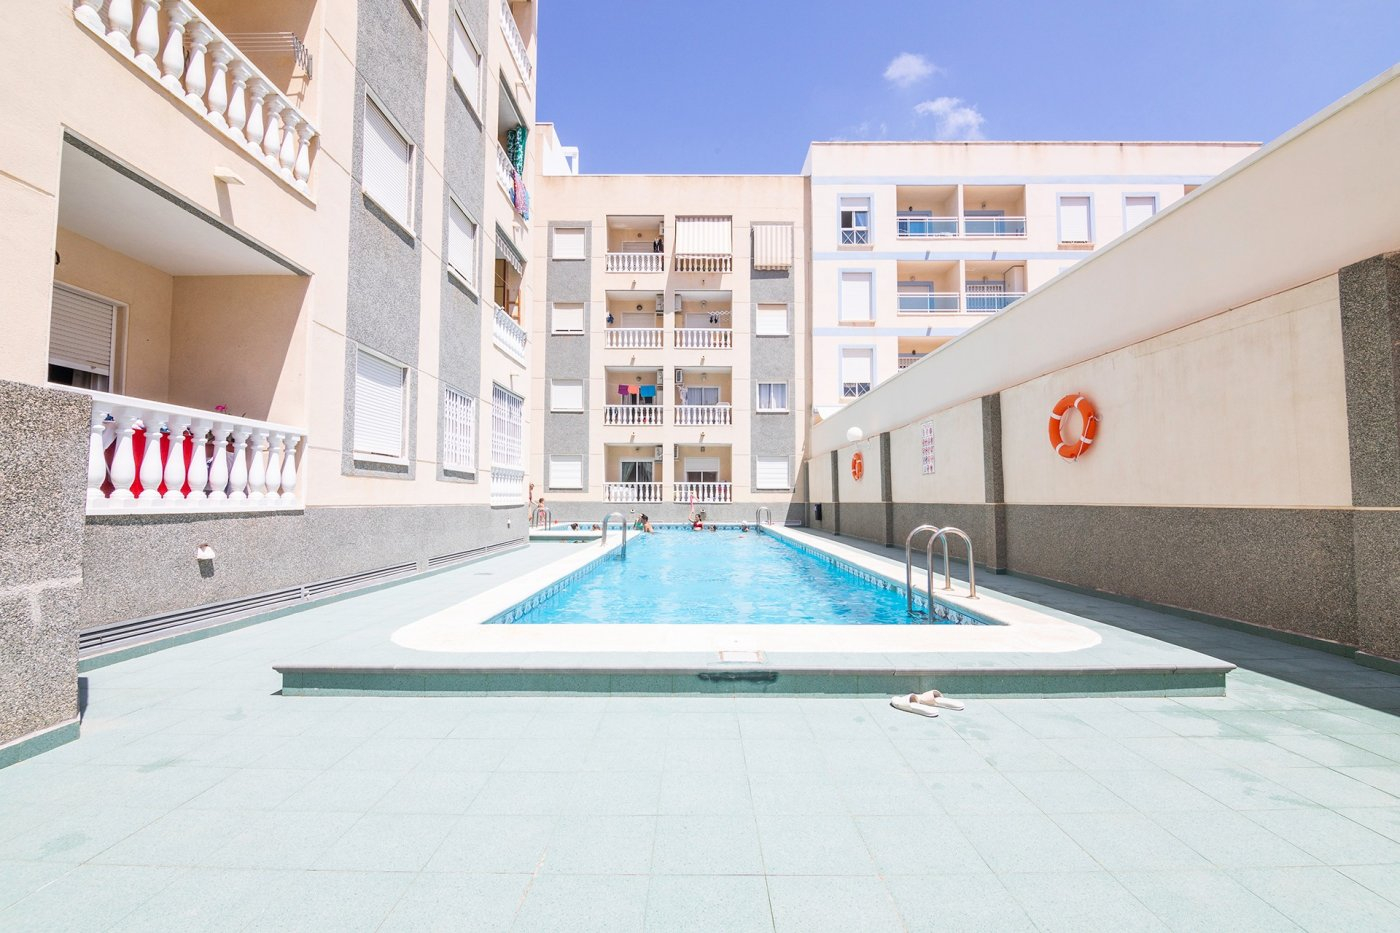 2 Bedrooms Apartment For Sale with Terrace and Swimming Pool